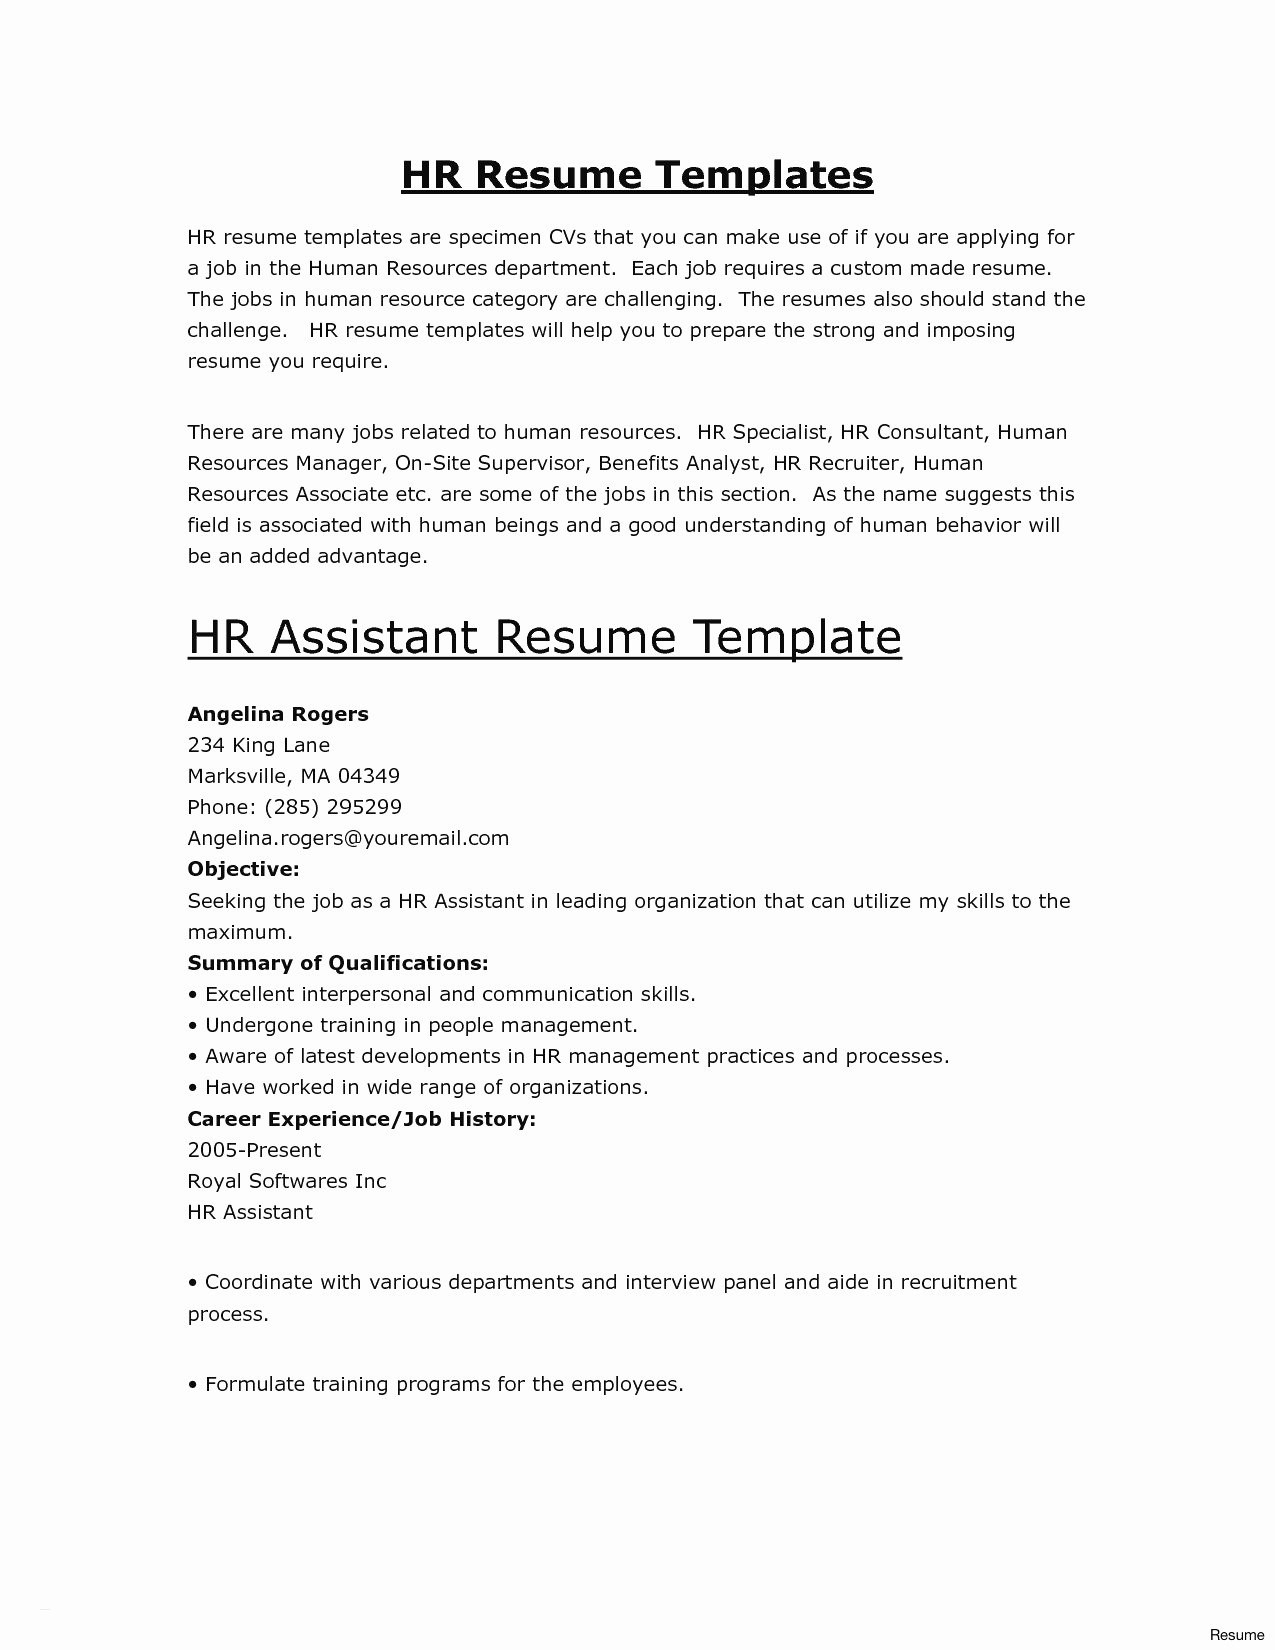 Word Templates Resume - Download Luxury Word 2013 Resume Templates